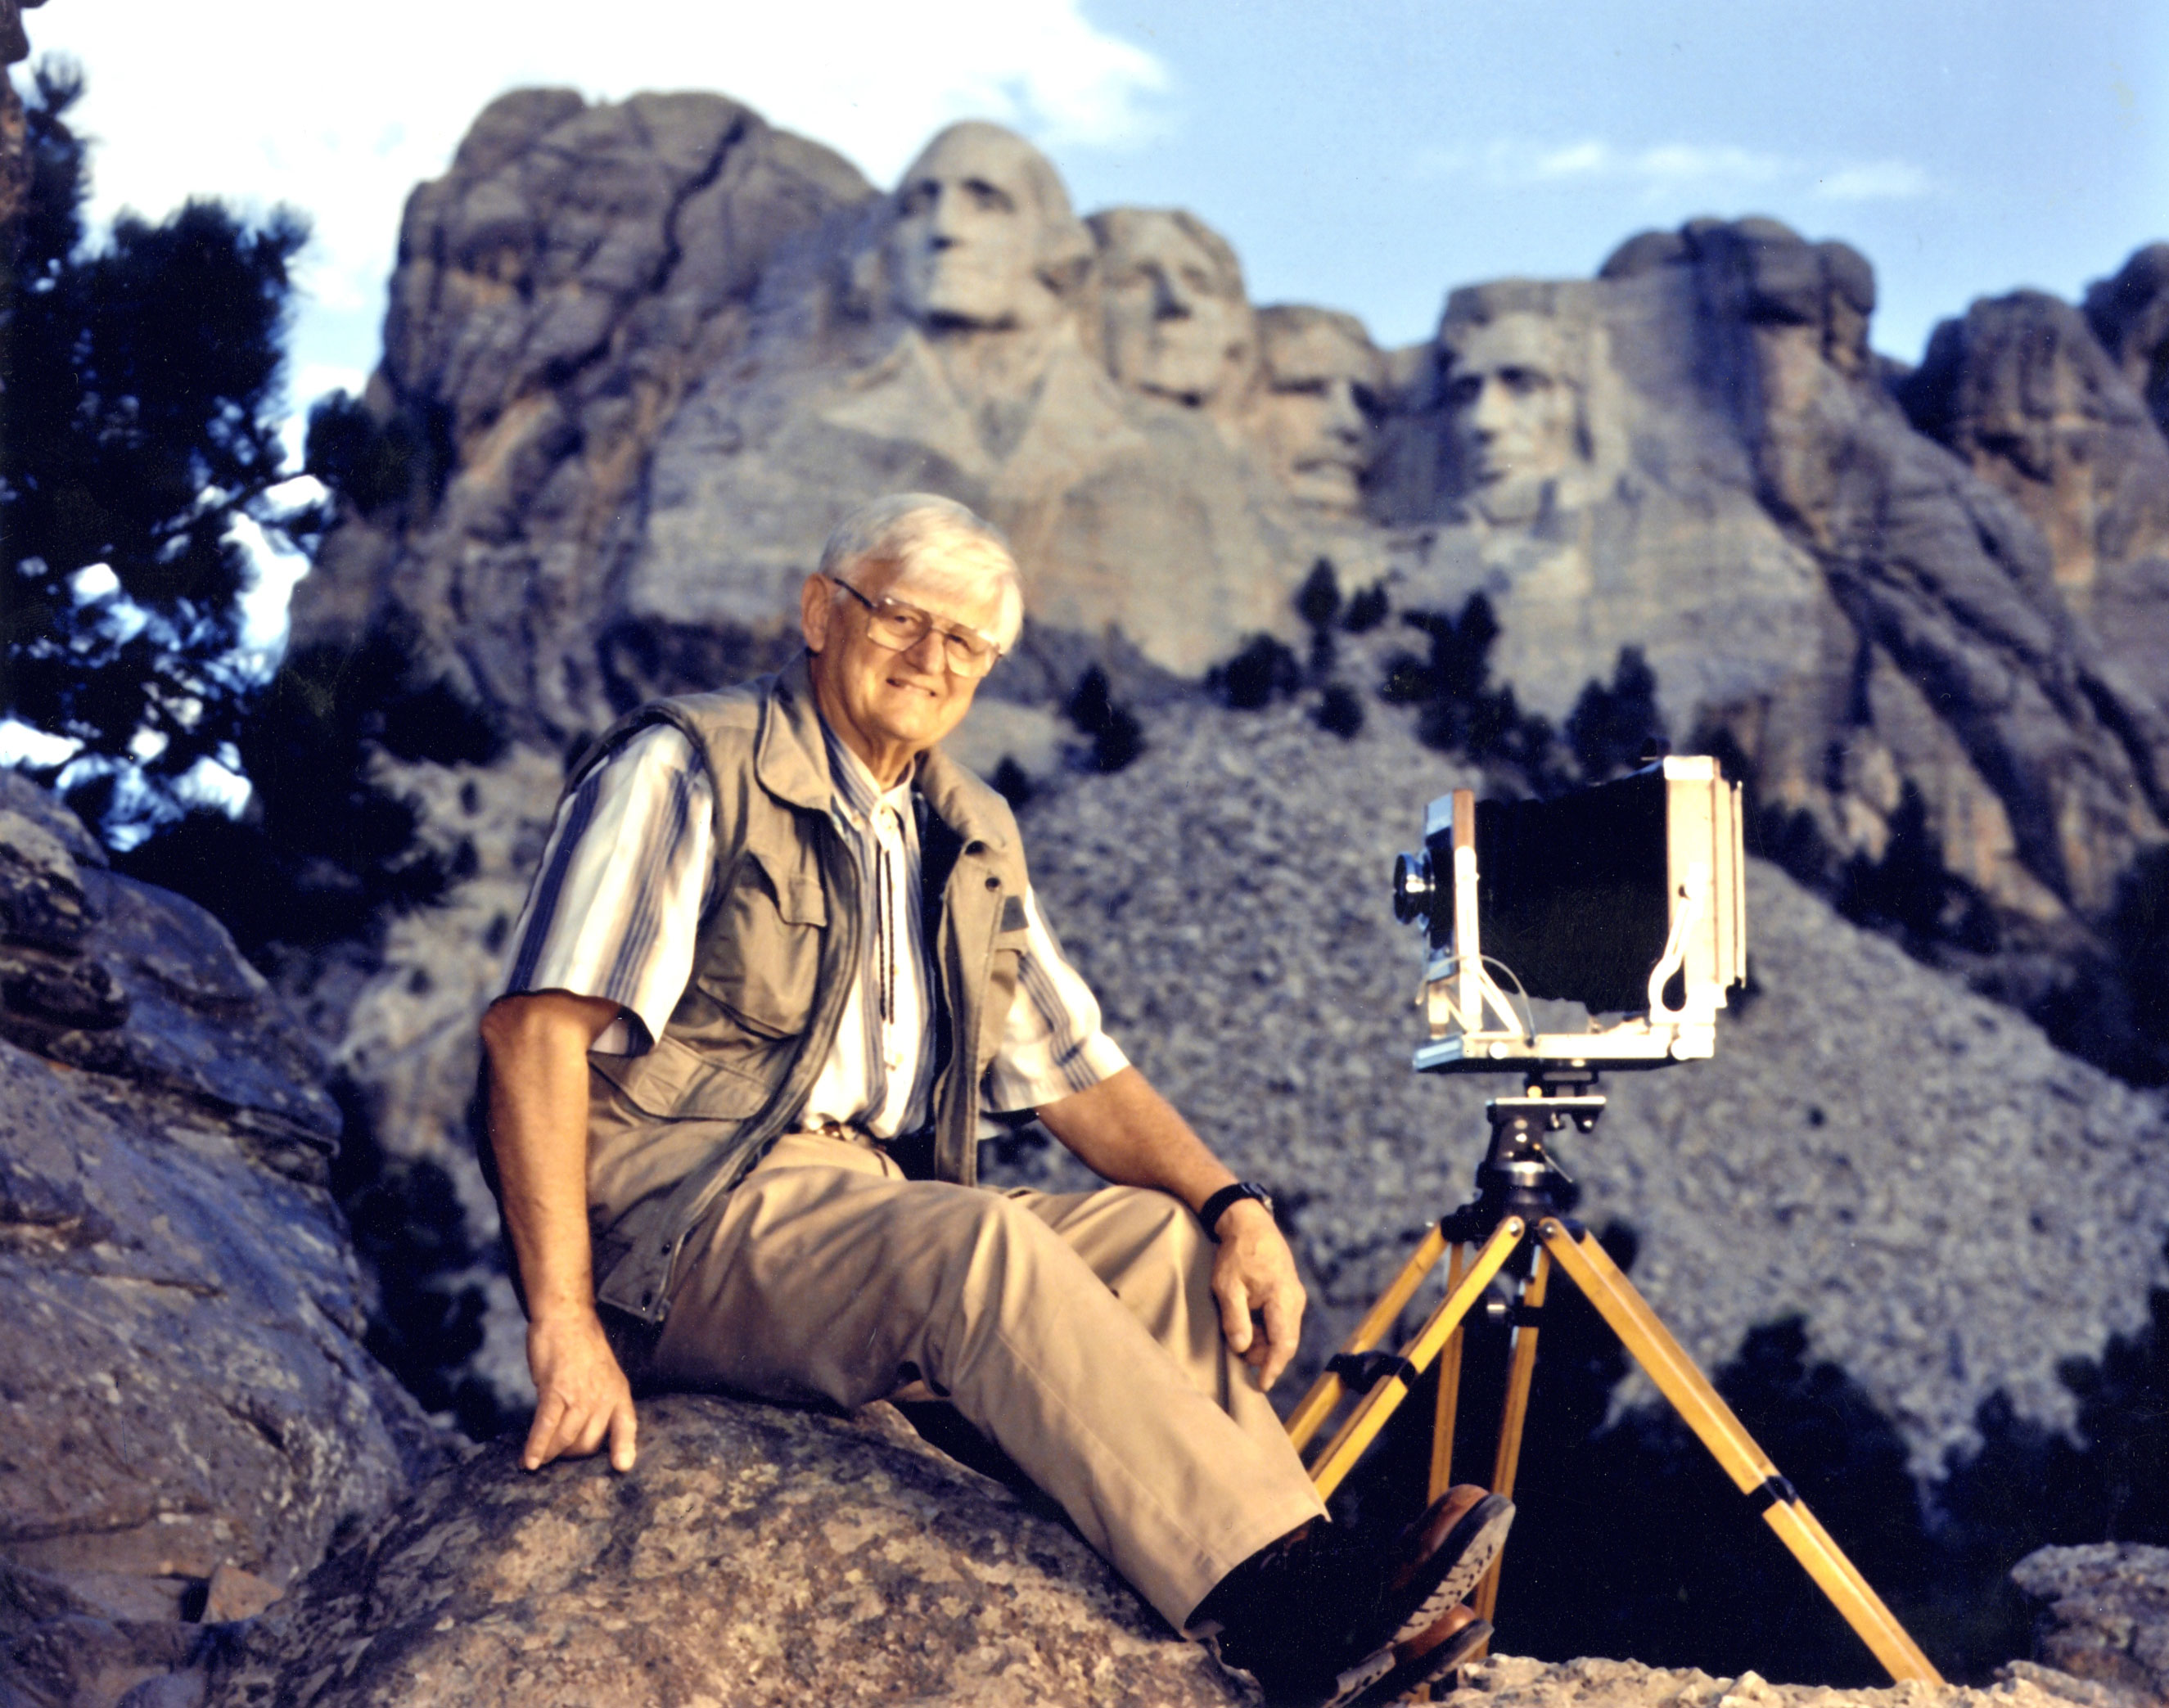 Bill Groethe with his 8x10 camera in front of Mount Rushmore, c. 1990s.